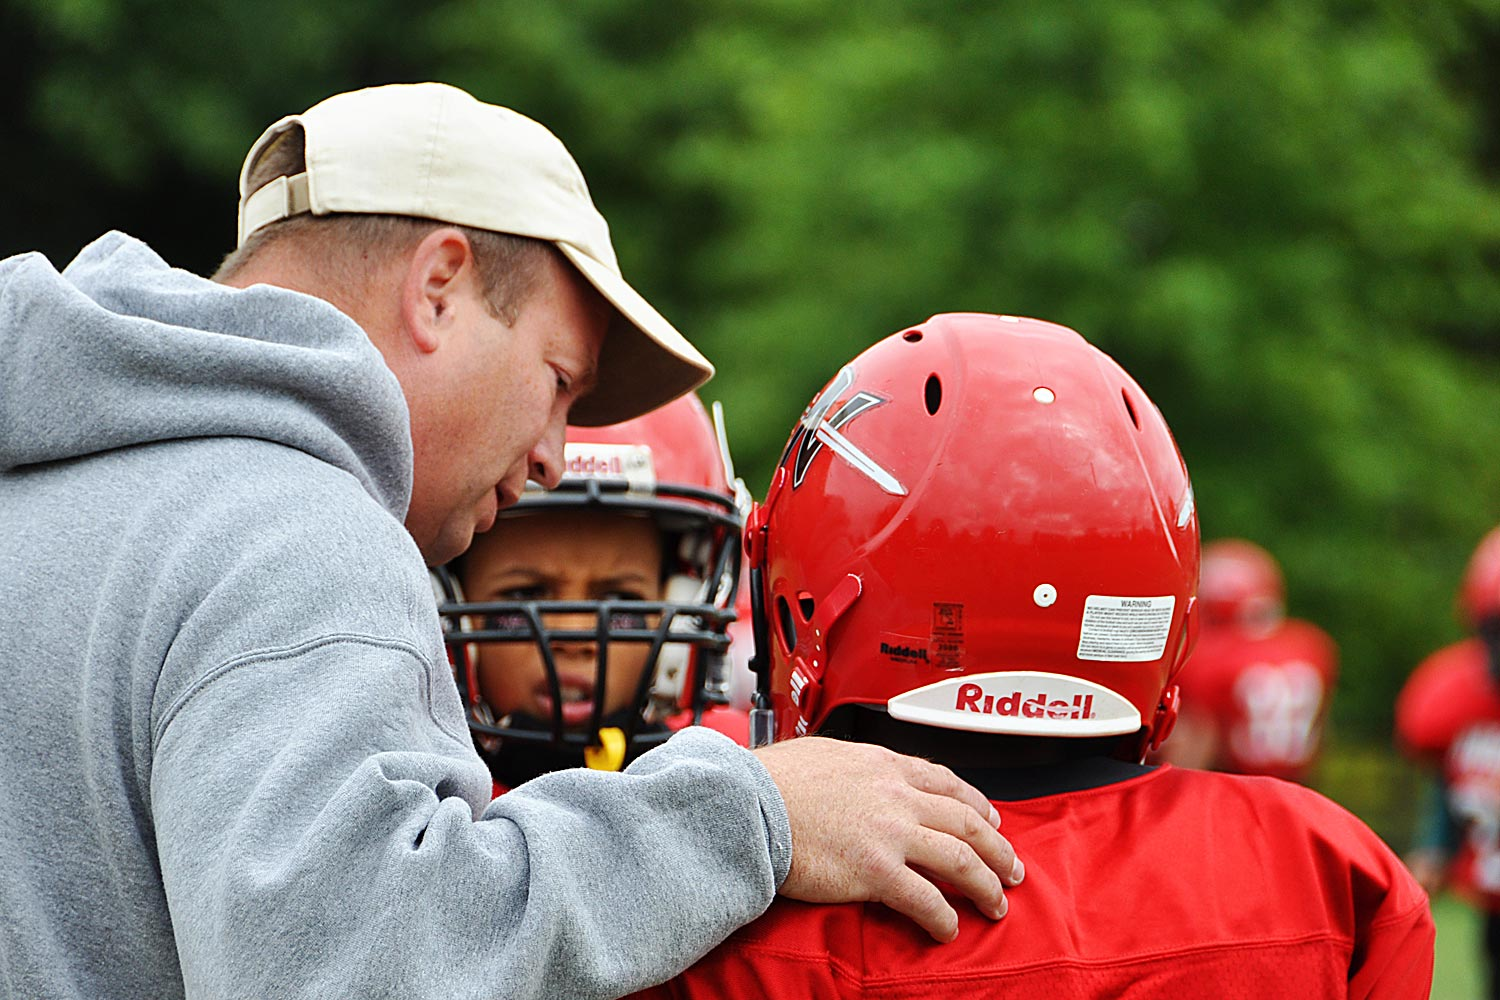 Coach for Norchester Red Knights 120 lb Football Team